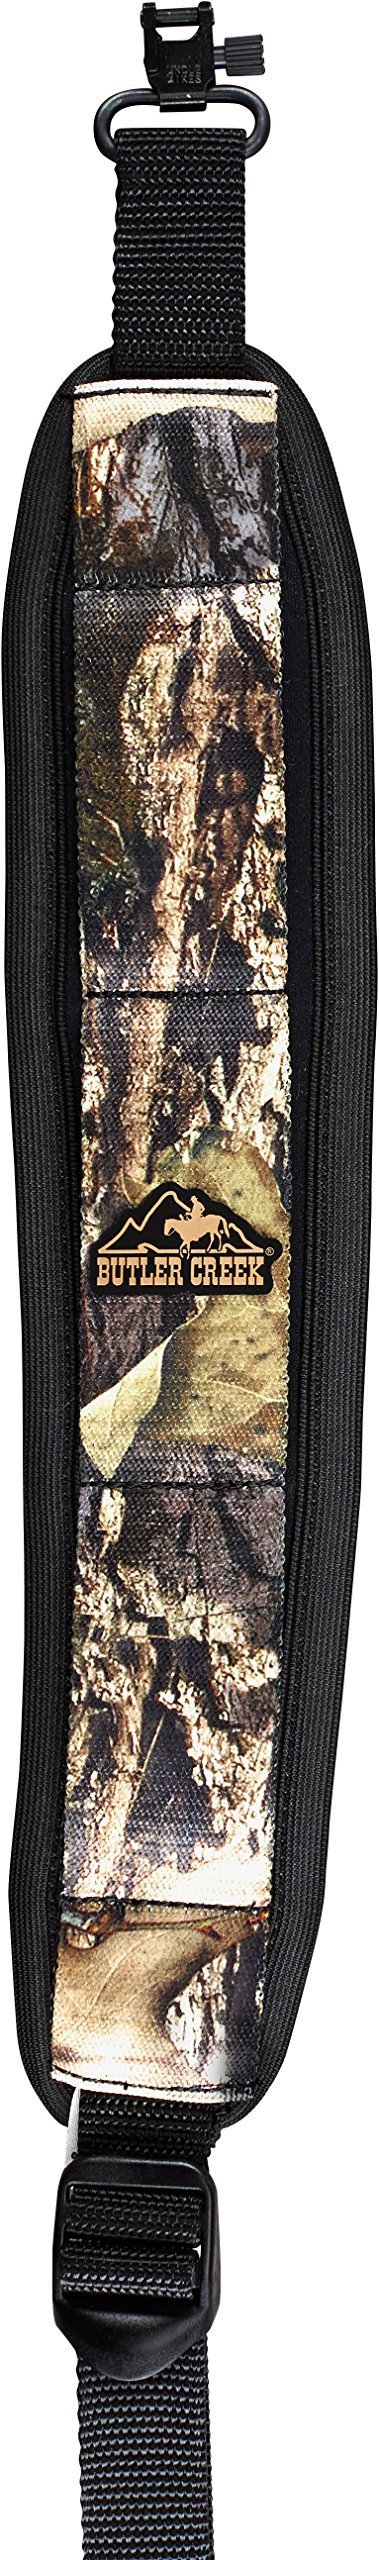 Butler Creek Comfort Stretch Rifle Sling with Swivels, Mossy Oak Break Up Country